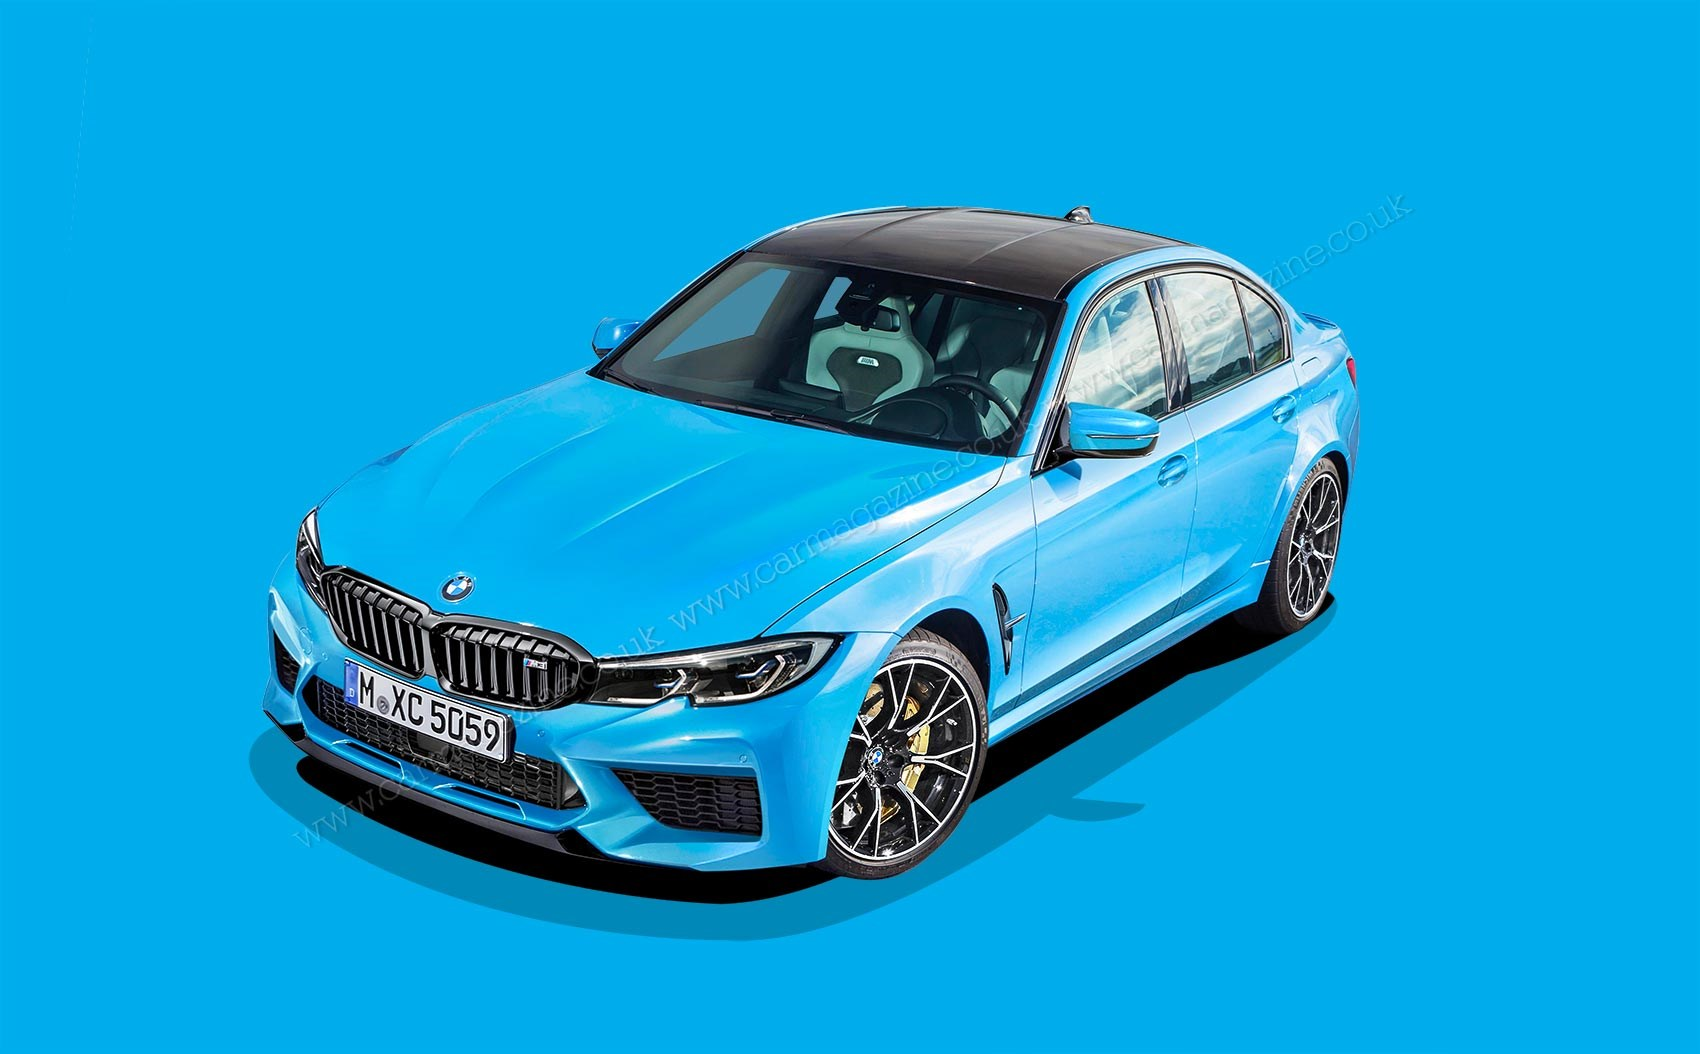 43 Concept of 2020 Bmw M3 Awd Interior with 2020 Bmw M3 Awd